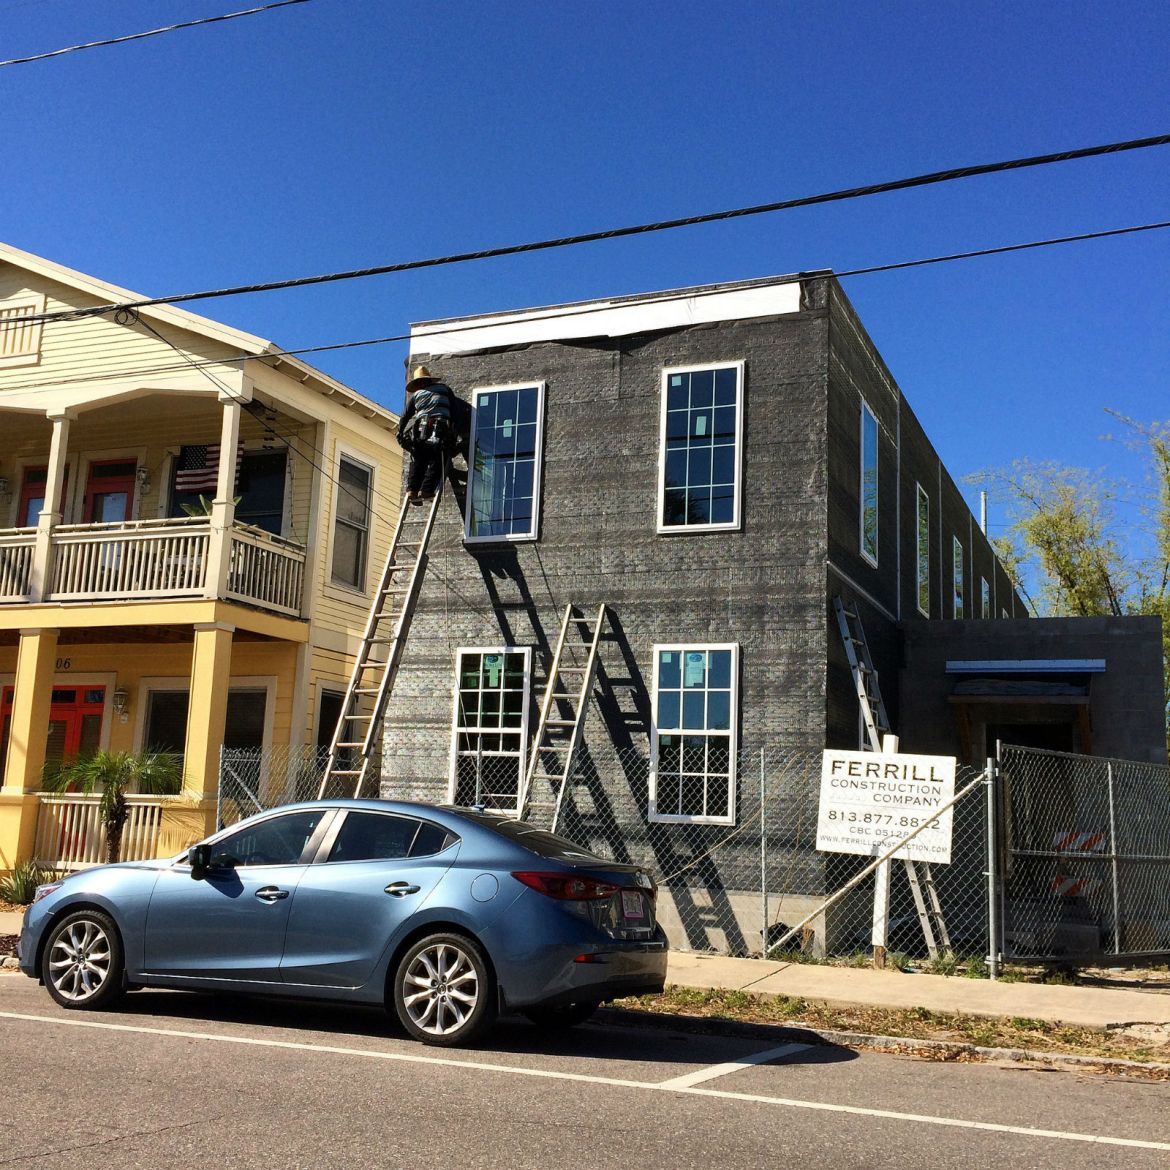 Ferrill Construction infill in Ybor City